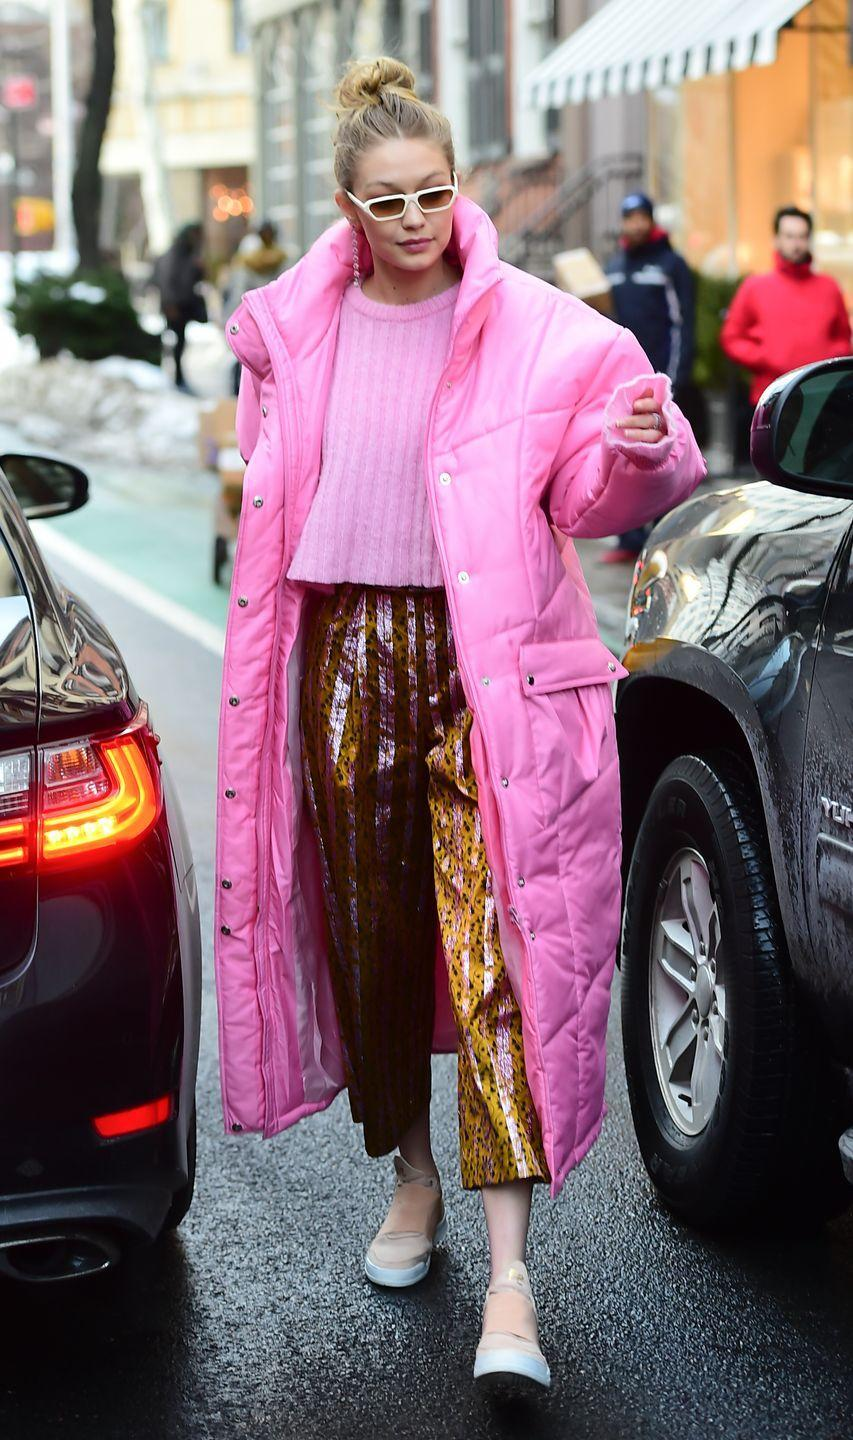 <p>Gigi just beat her record for craziest outfit in a Pepto pink sweater, metallic printed pants, and a sleeping bag with arms. I aspire to be this level of extra. </p>